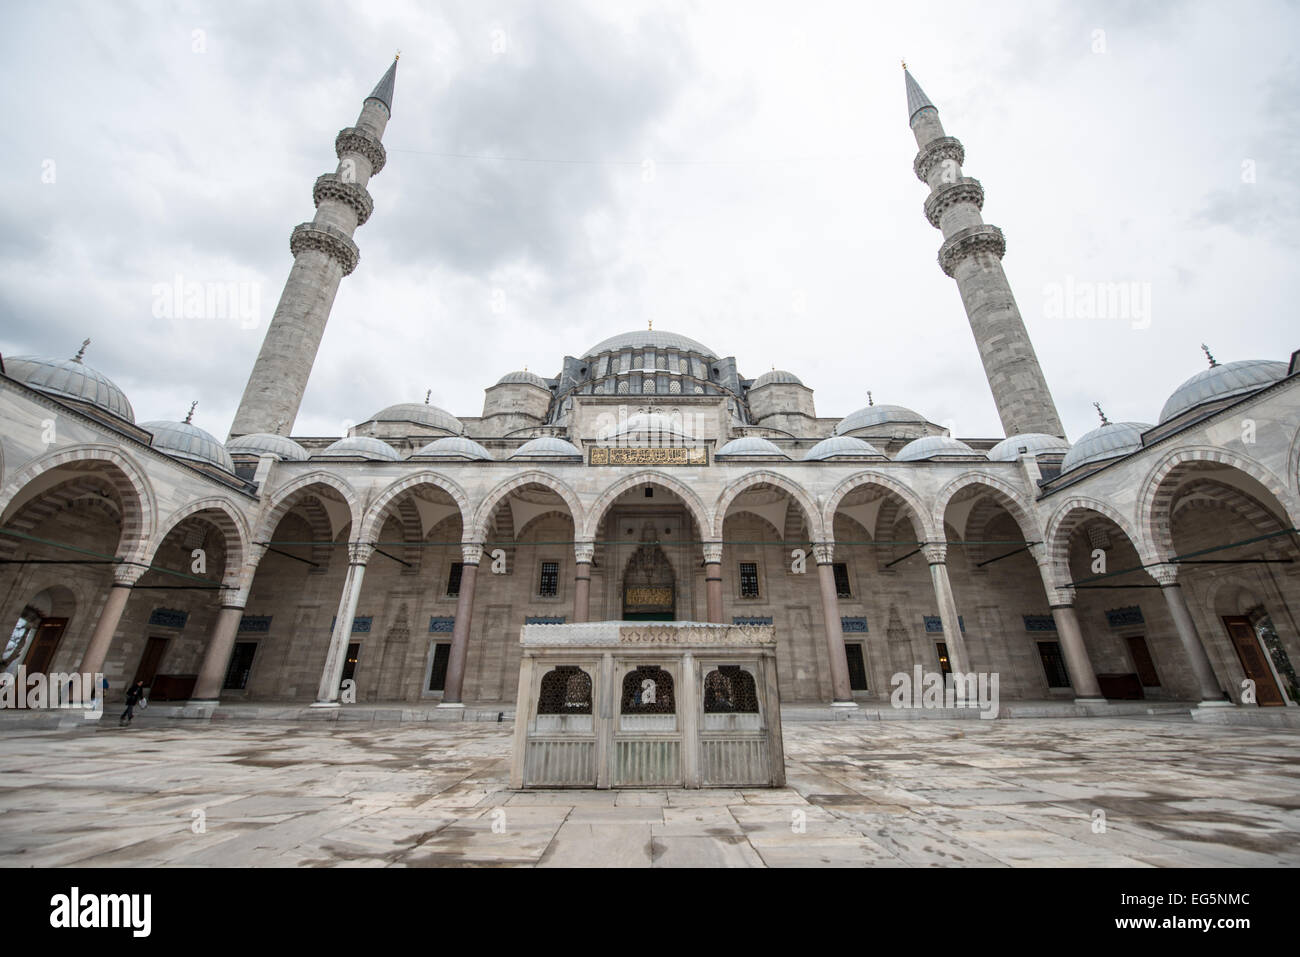 The courtyard of Suleymaniye Mosque in Istanbul. Dedicated ...